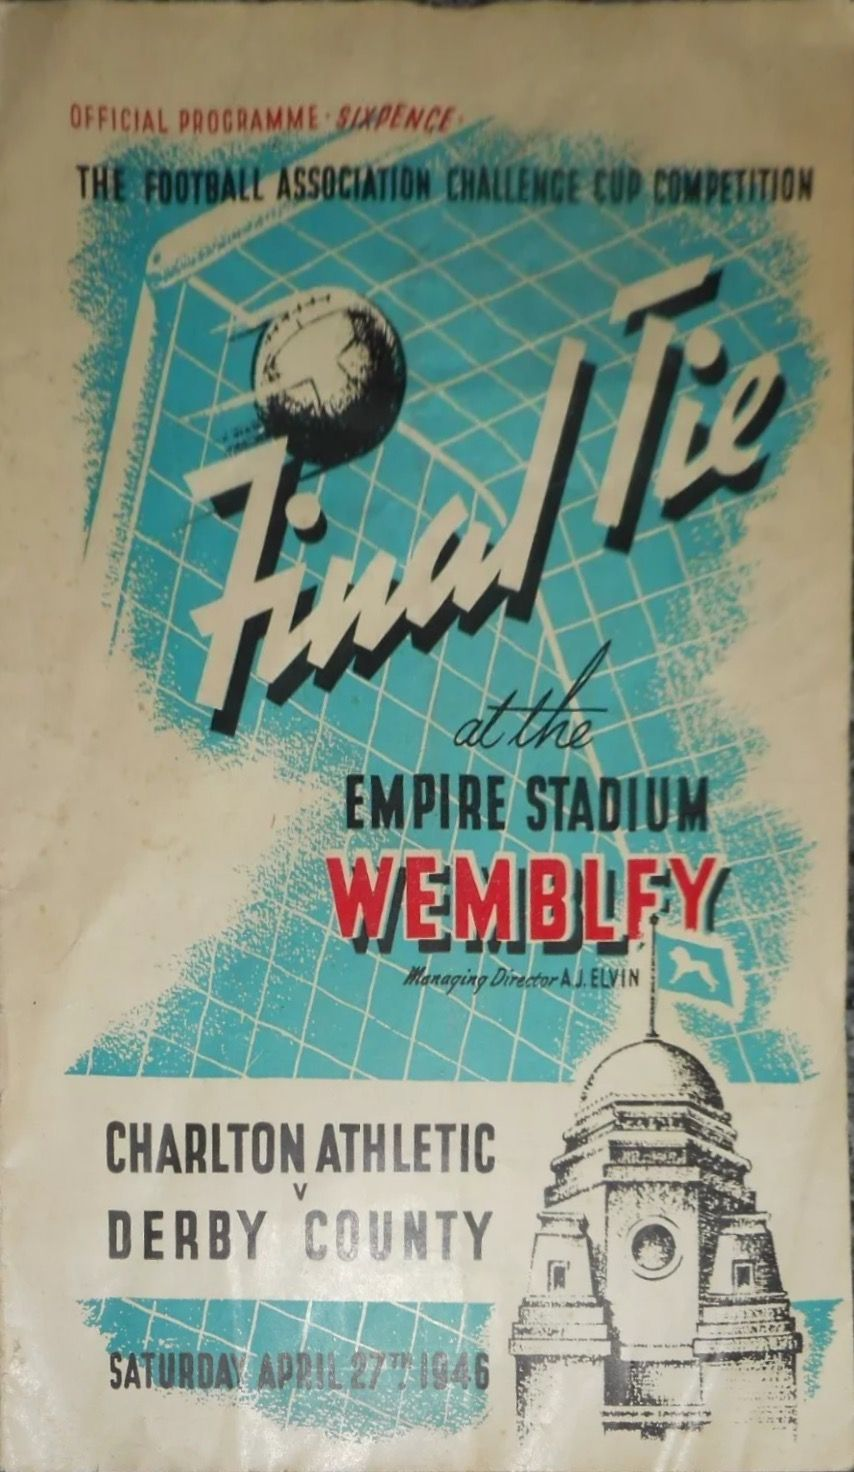 Pin by Ian Cole on Vintage Soccer (With images) Charlton